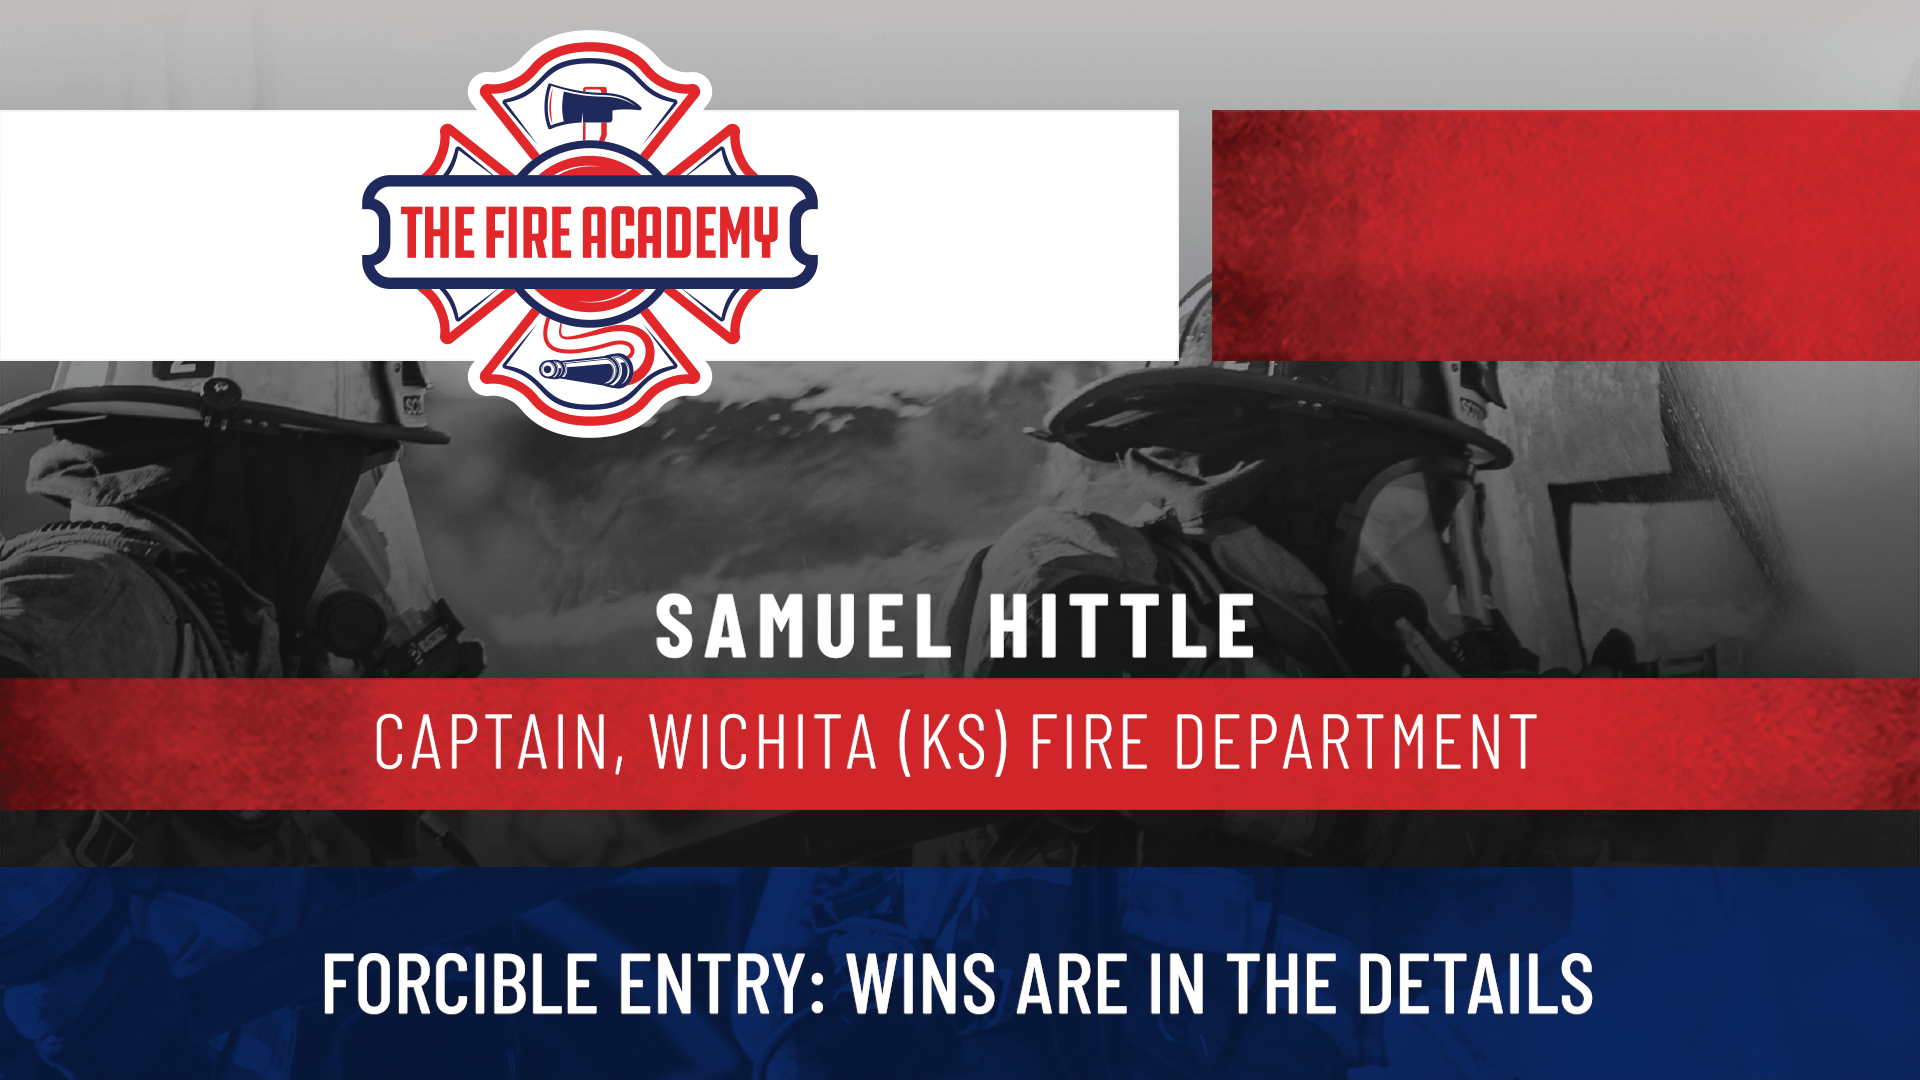 Forcible Entry: Wins Are in the Details